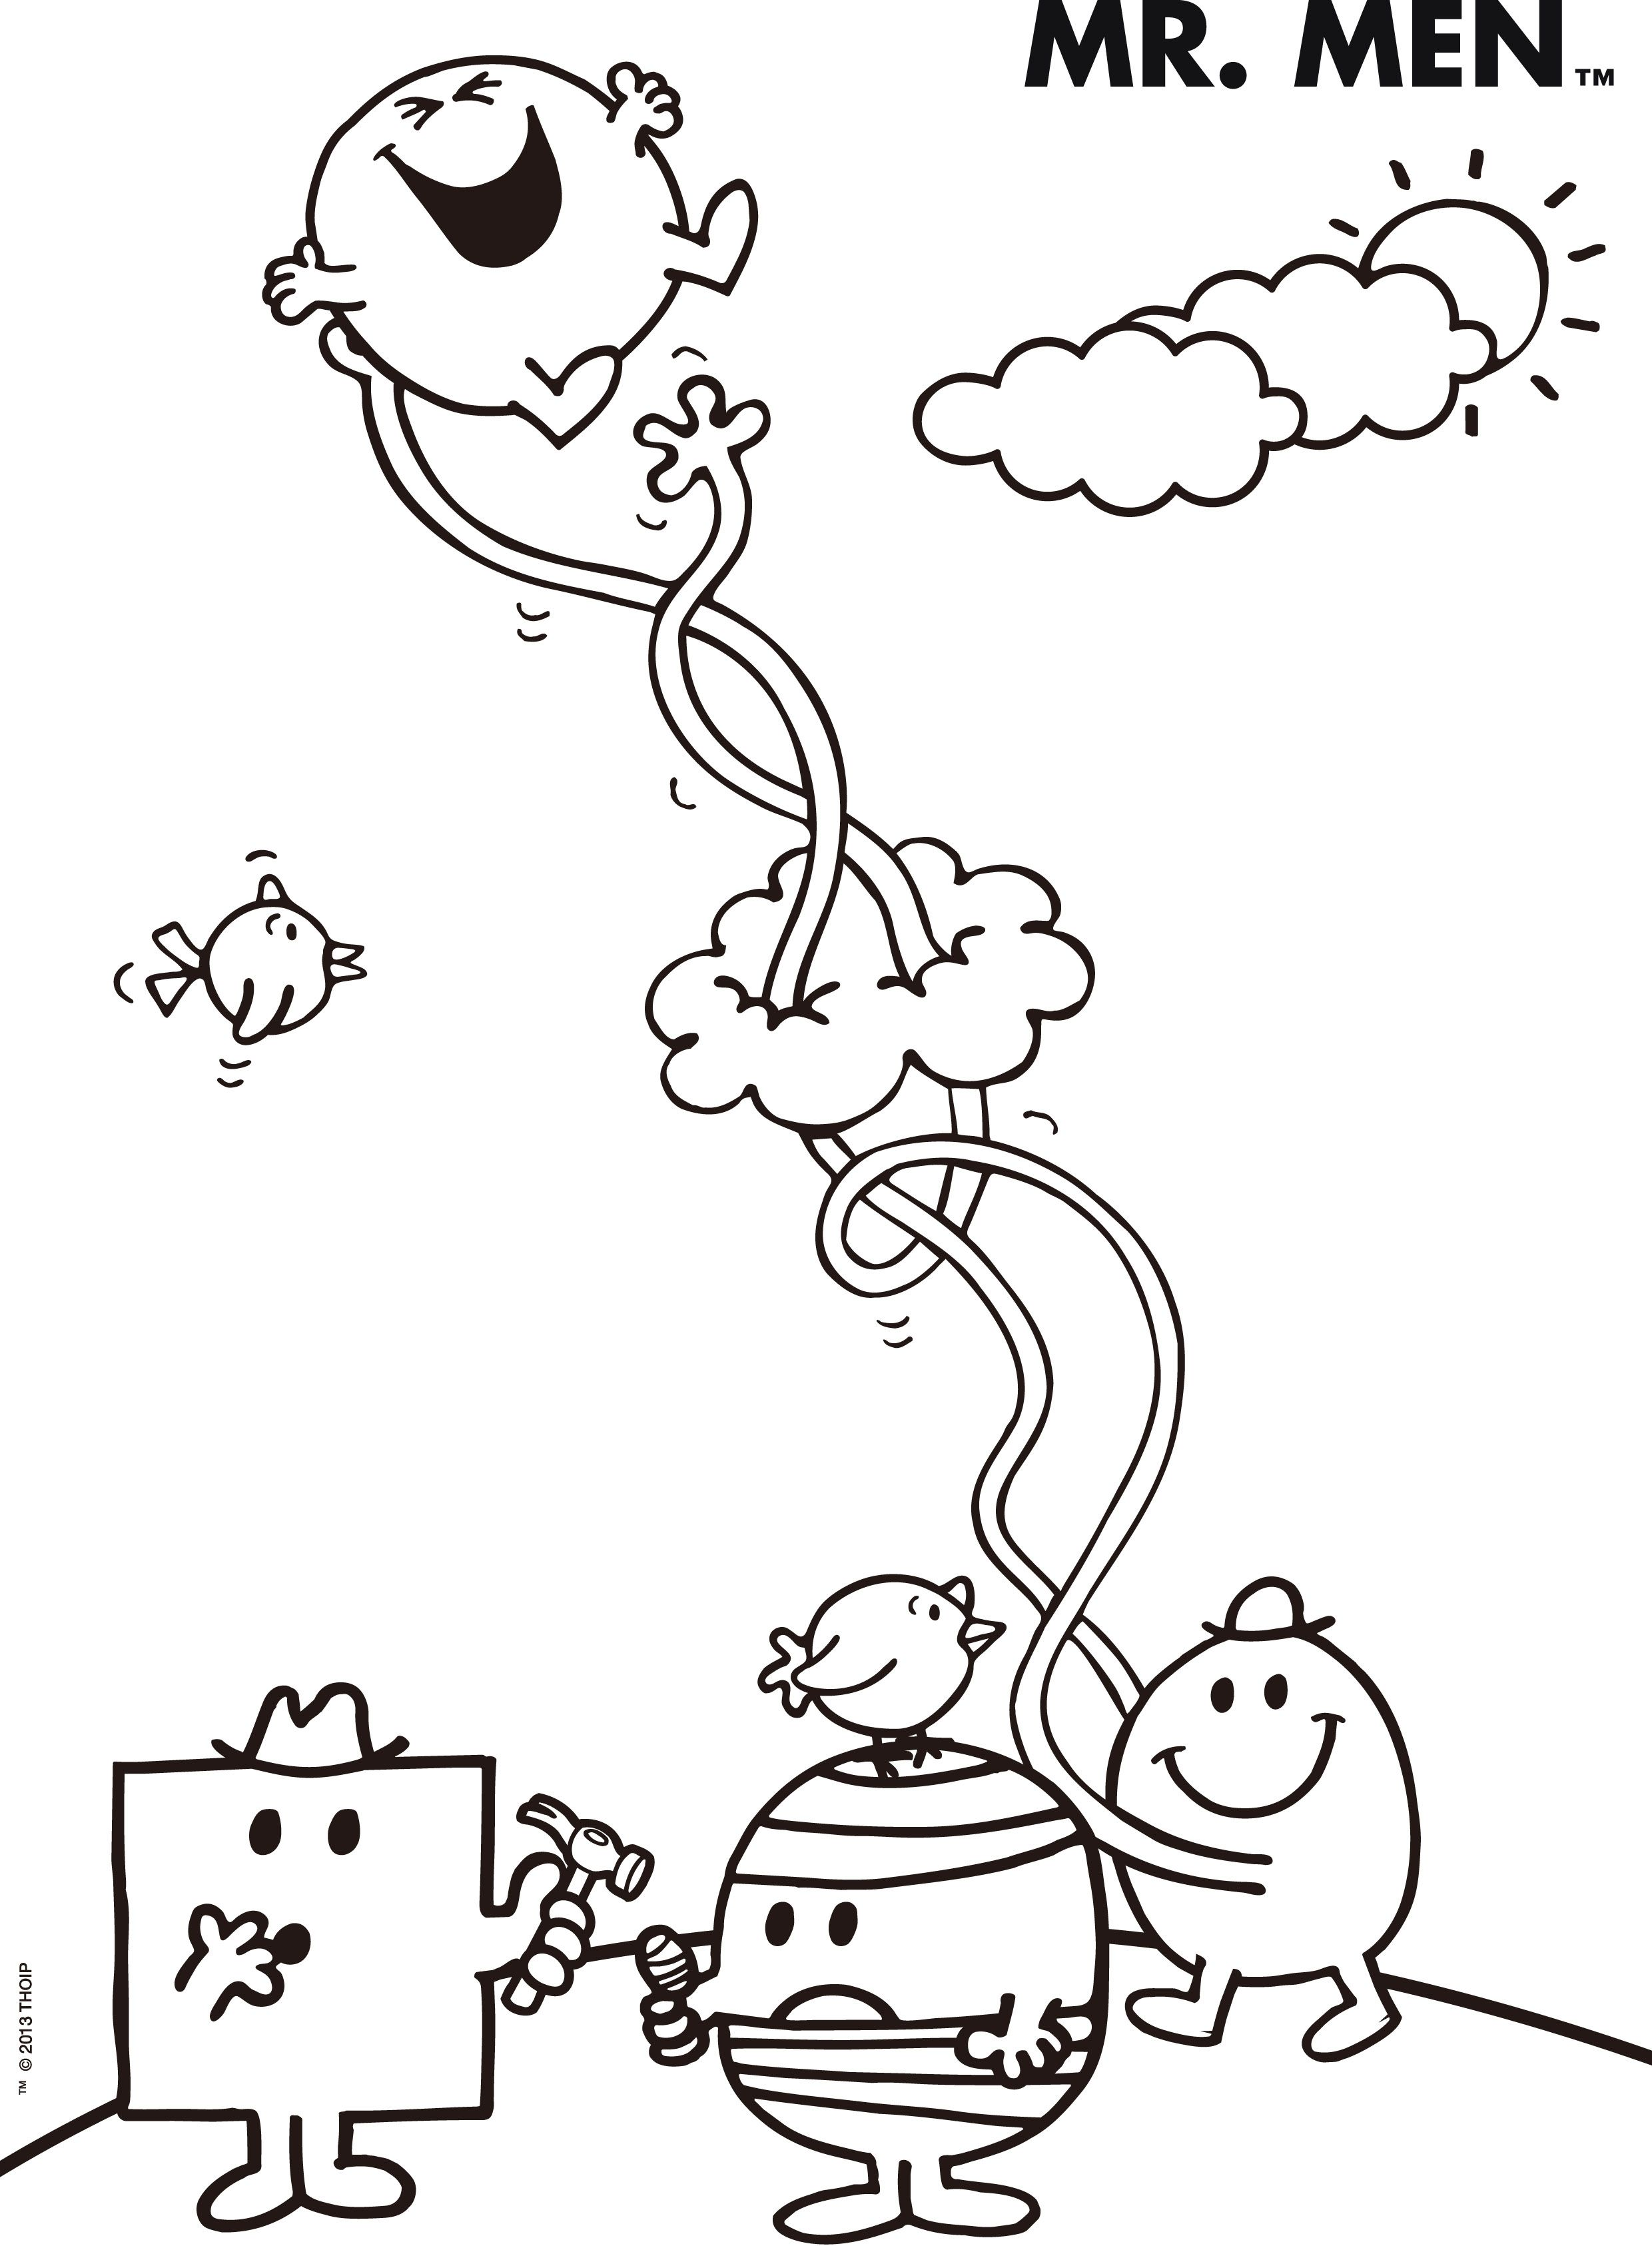 sprout coloring pages - photo#26